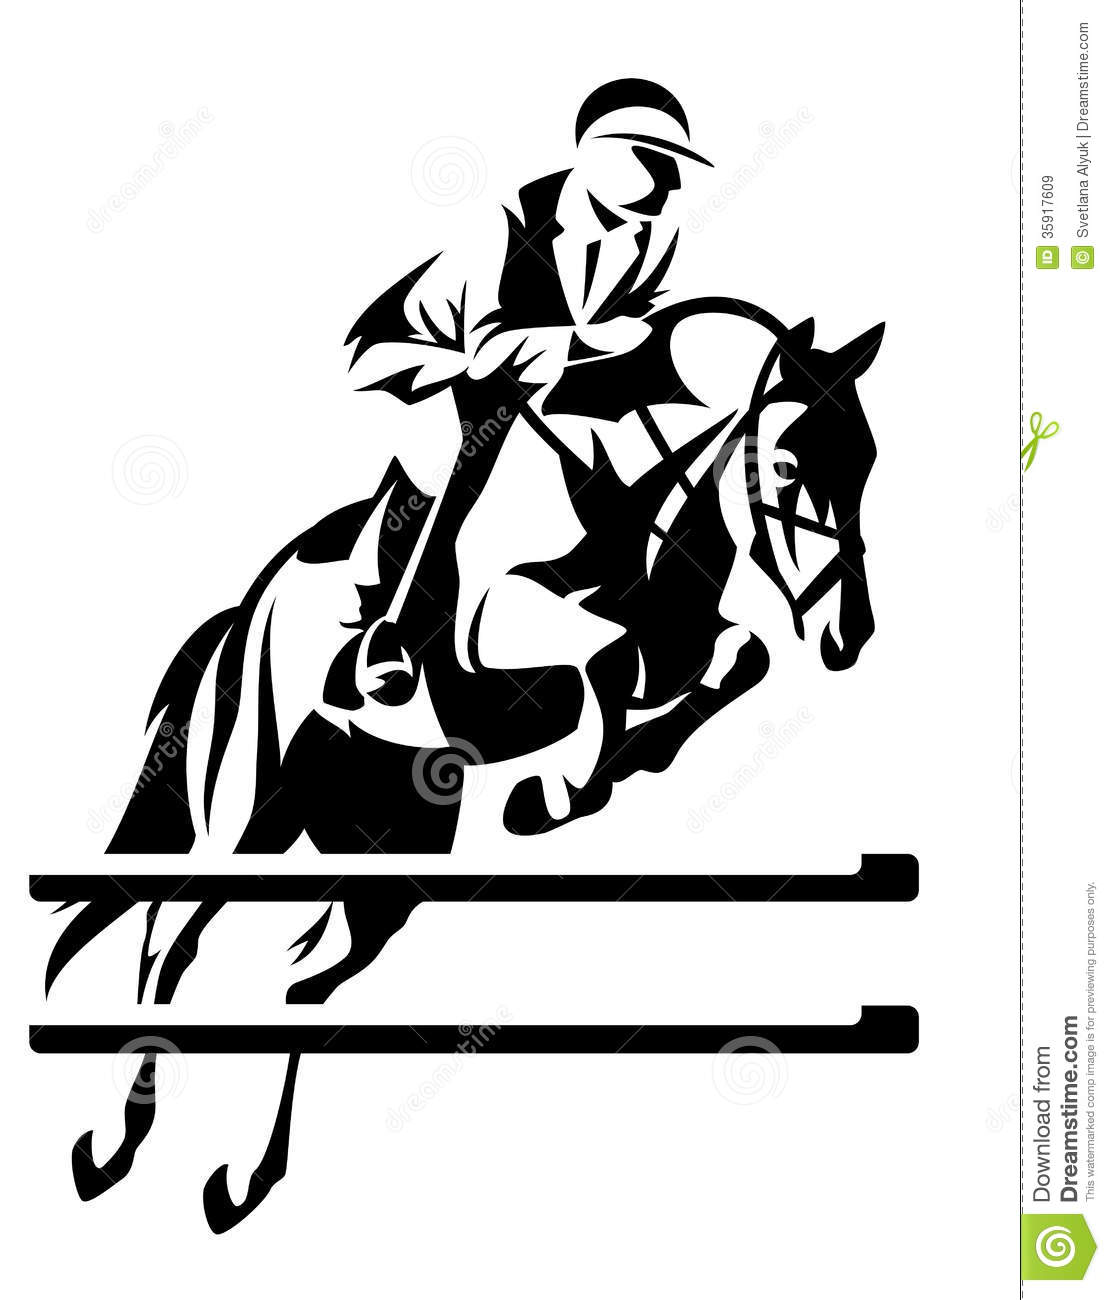 ... jumping horseman design - black and white equestrian sport emblem